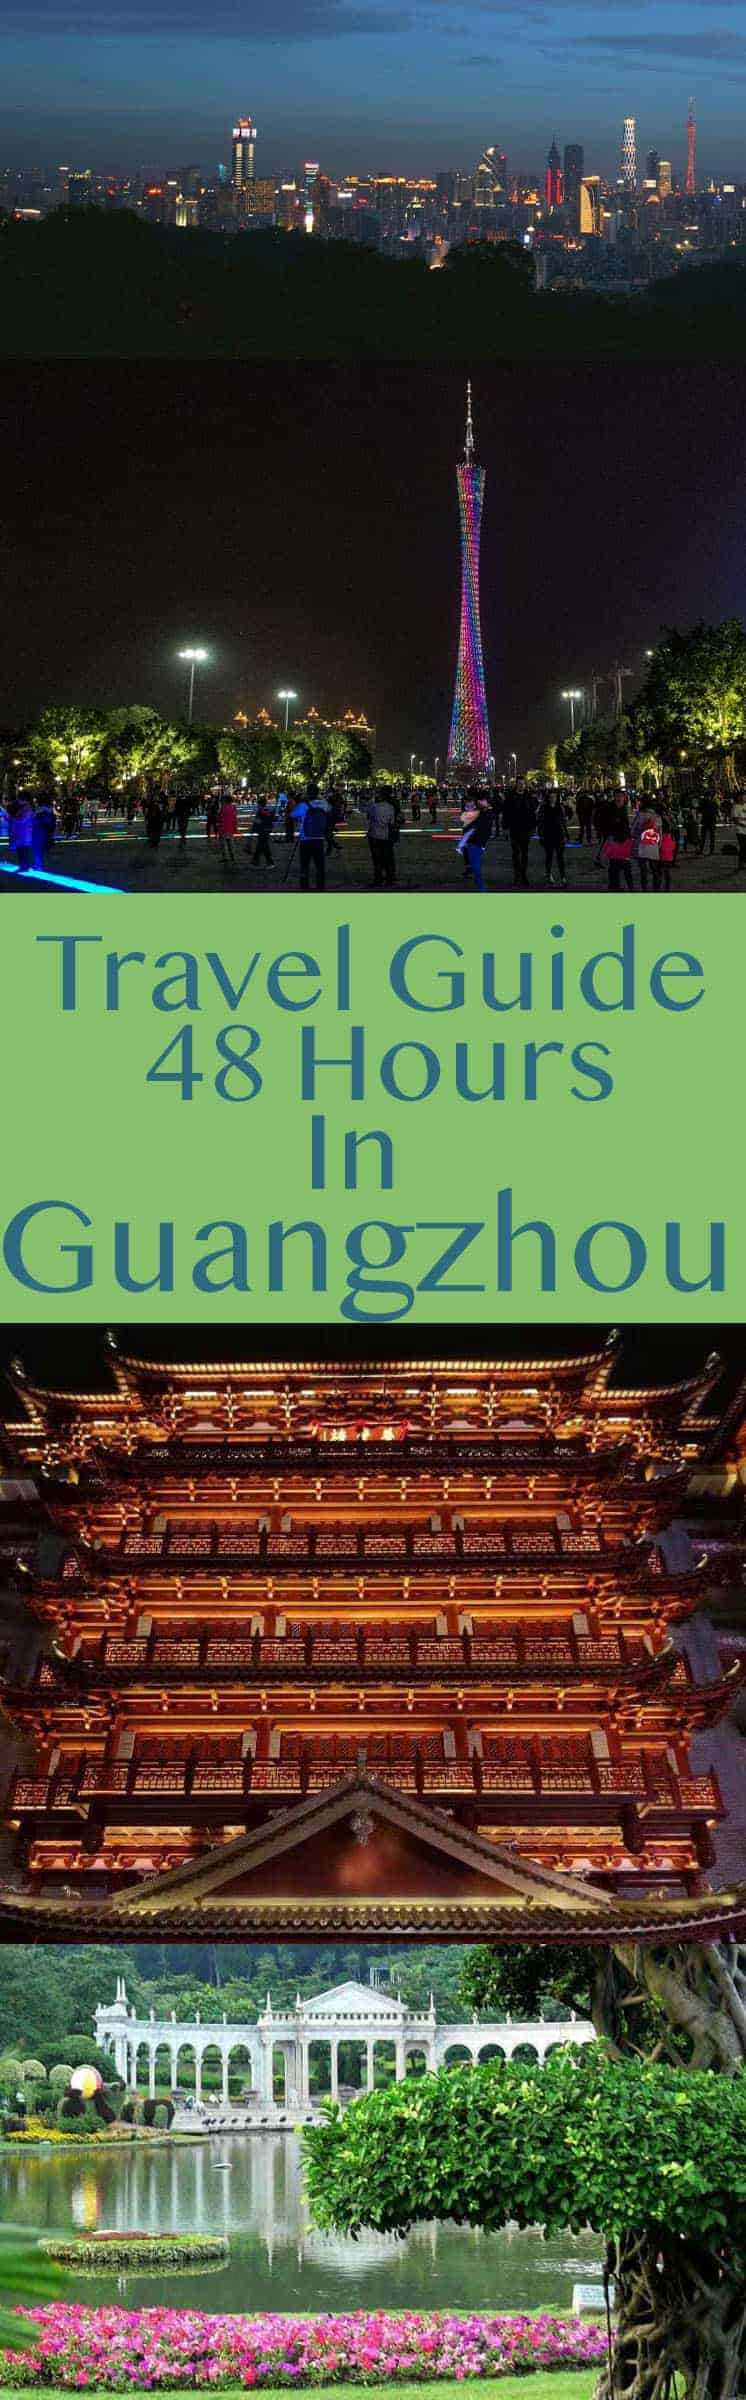 Travel Guide to Guangzhou China´s third biggest city